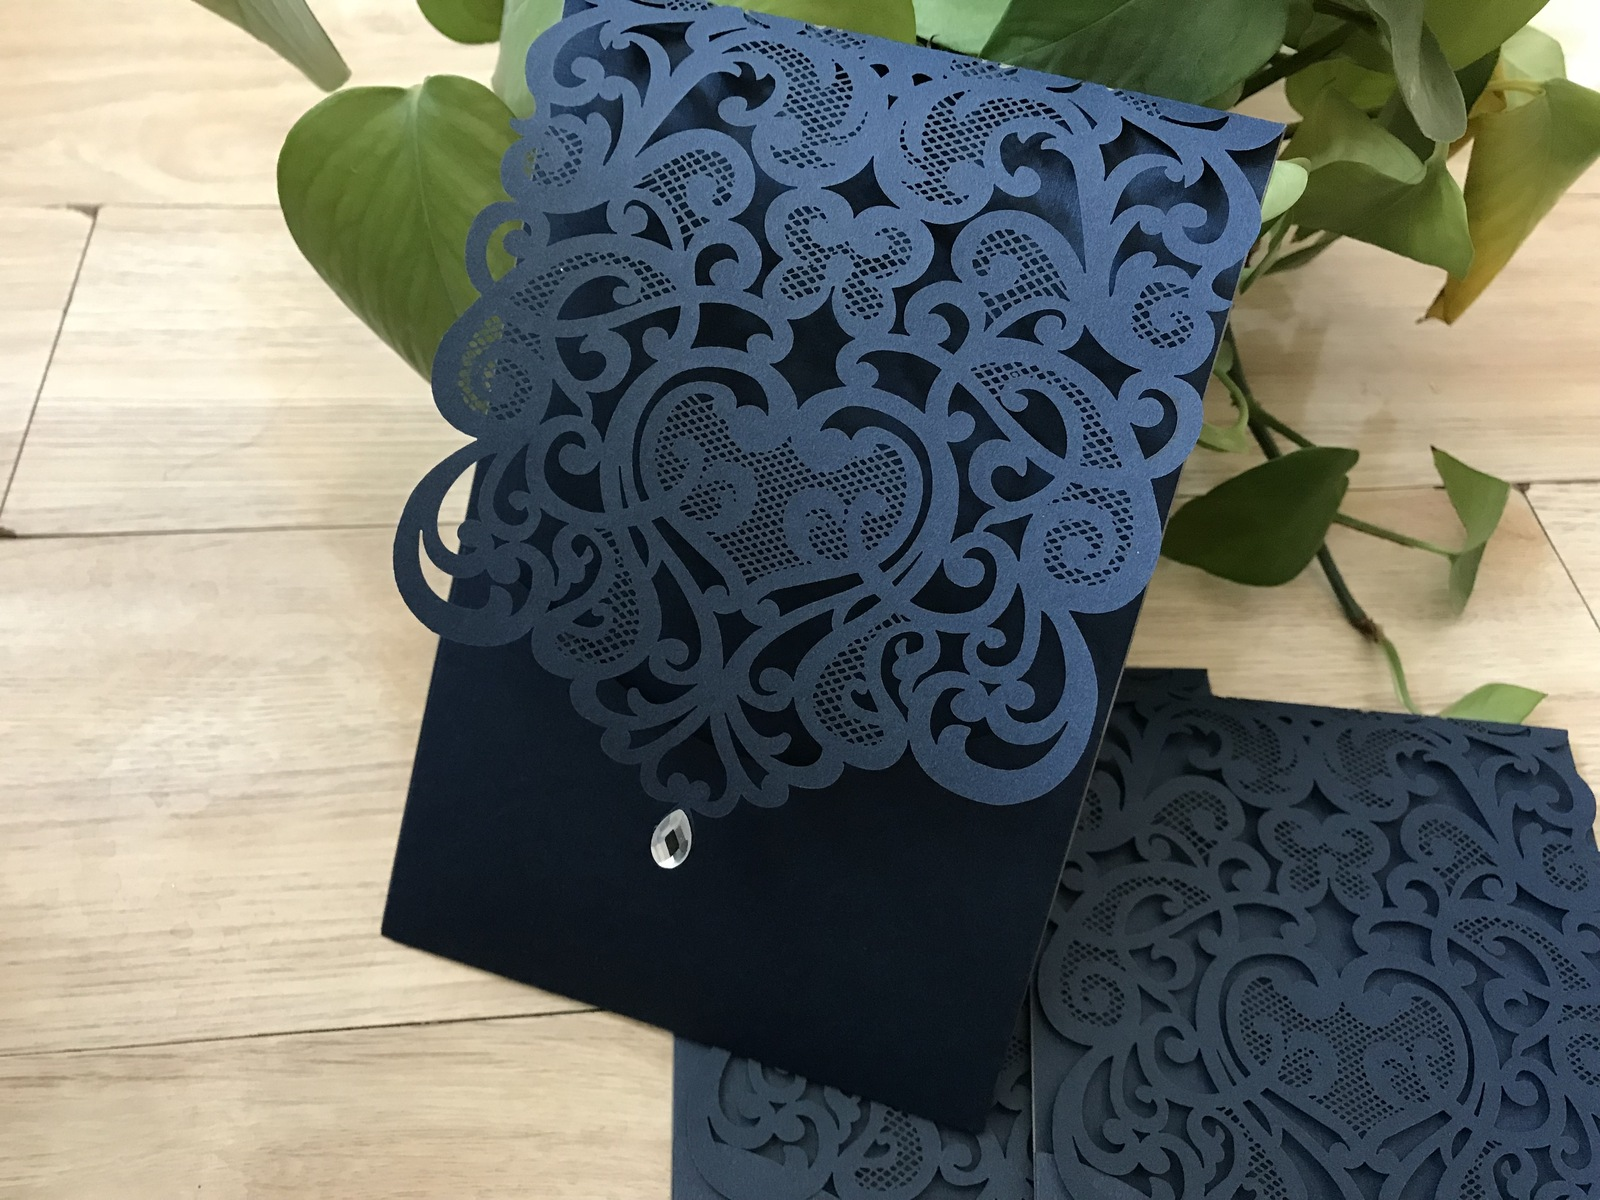 Dake Blue Pocket Style Laser Cut Invitaiton Cards,50pcs Wedding Invitations